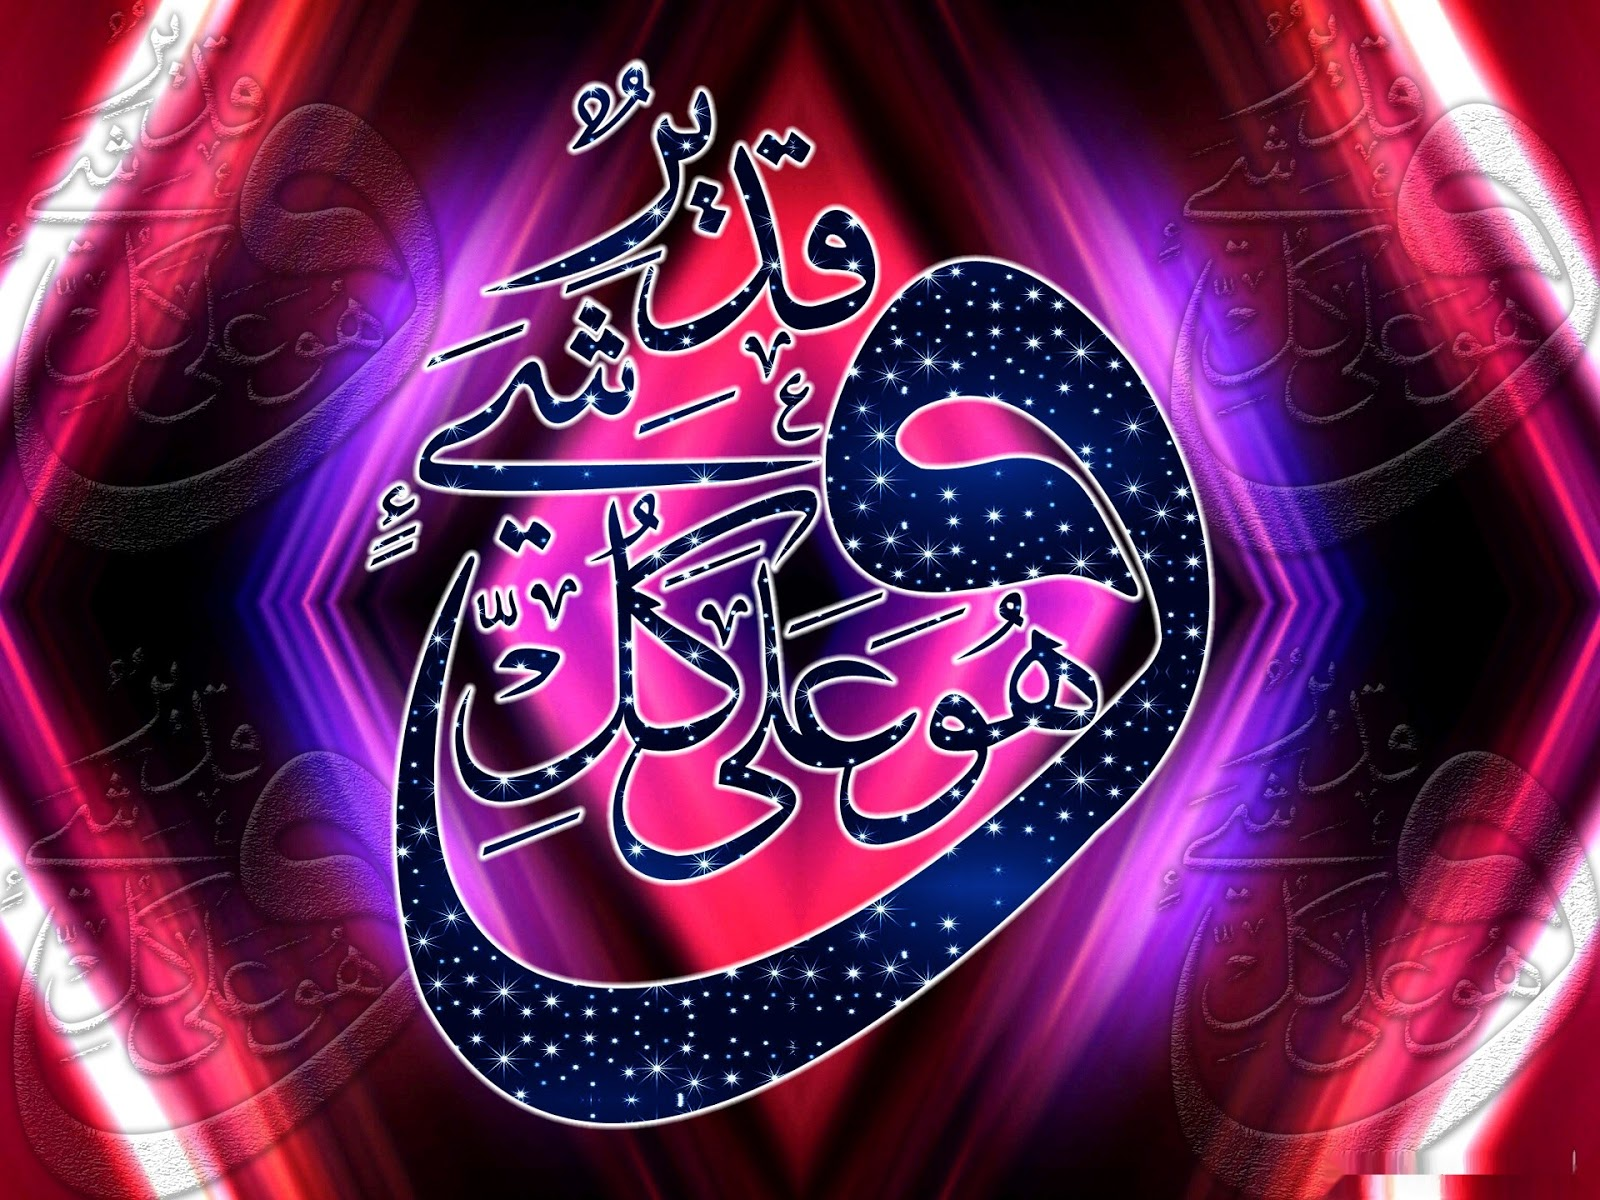 Islamic High Quality Wallpapers Calligraphy Latest Wallpaper